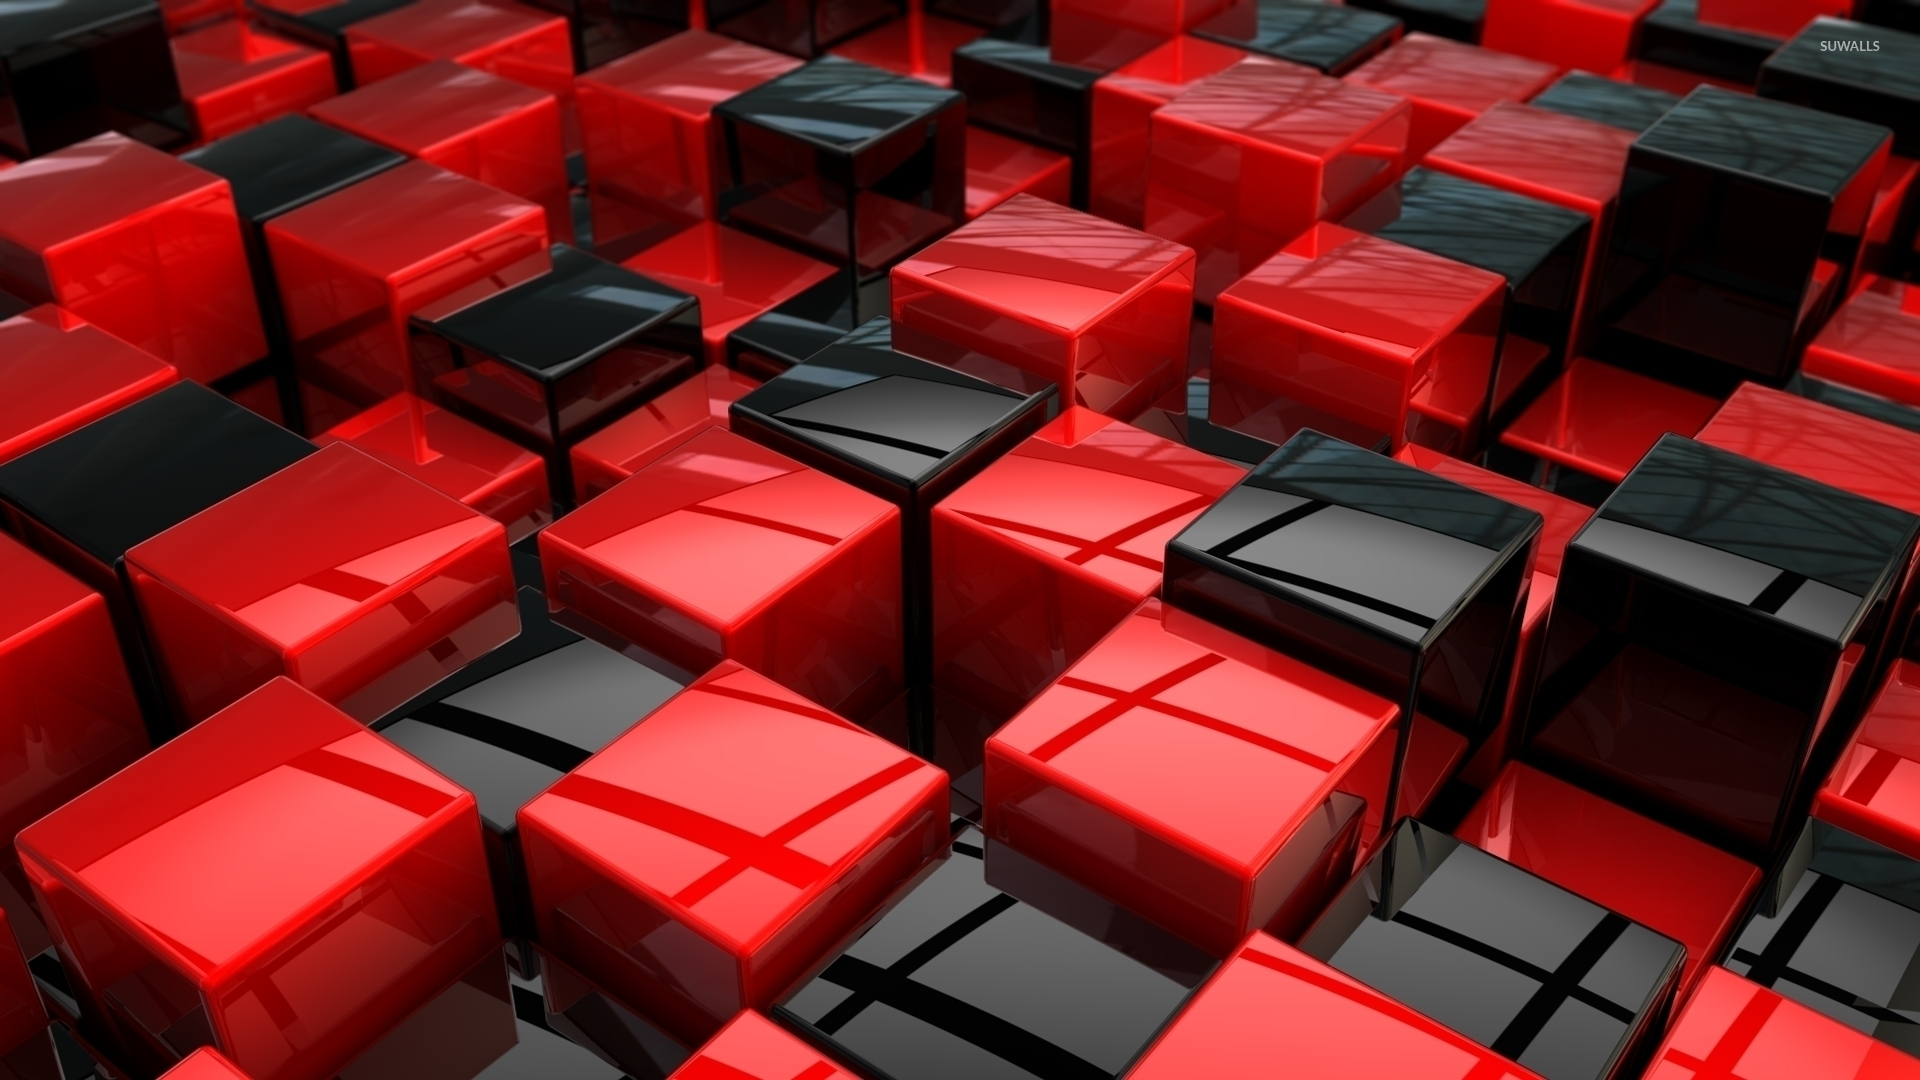 red and black cubes wallpaper - 3d wallpapers - #33140